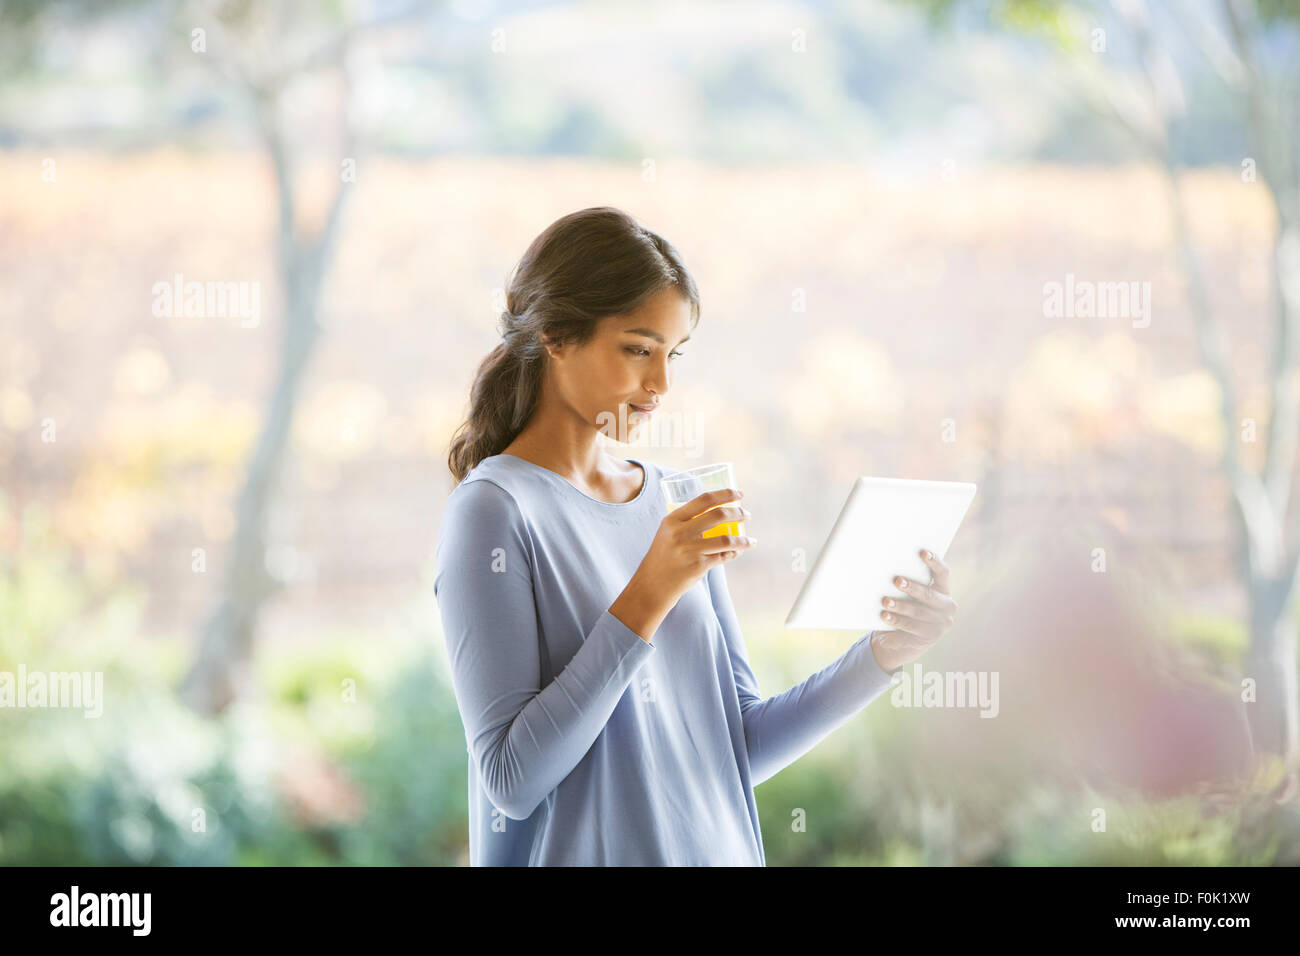 Woman drinking orange juice and using digital tablet - Stock Image